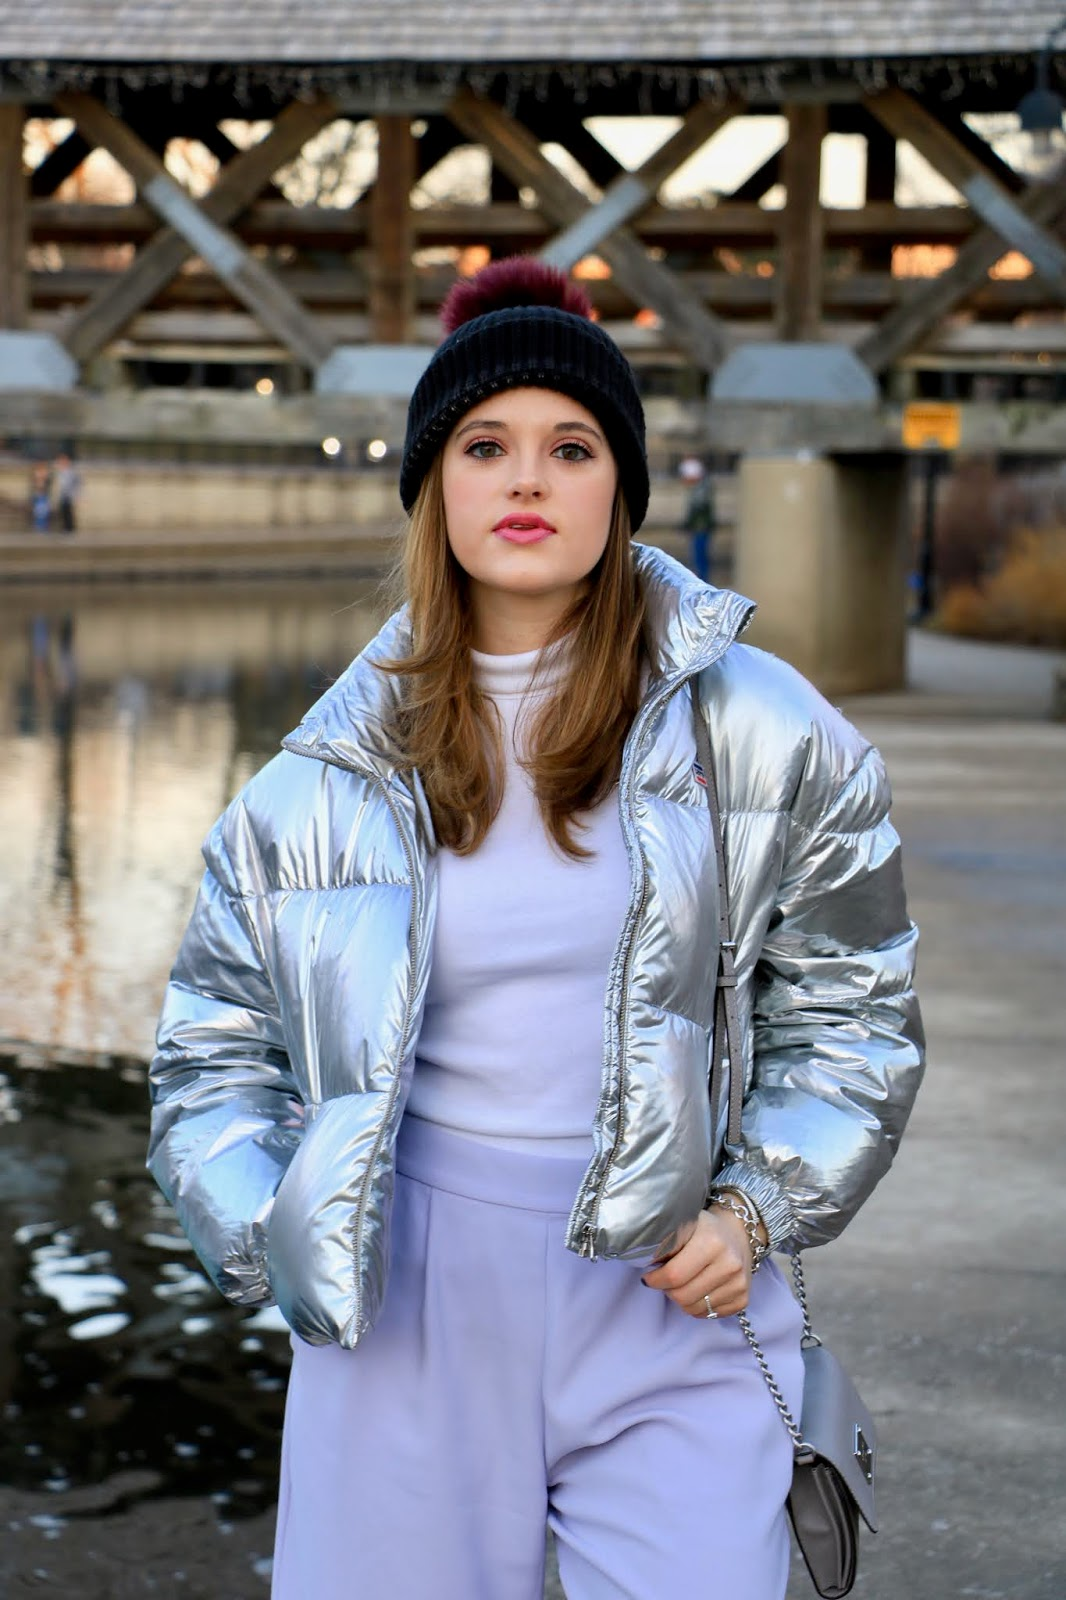 Nyc fashion blogger Kathleen Harper wearing a metallic cropped puffer coat.